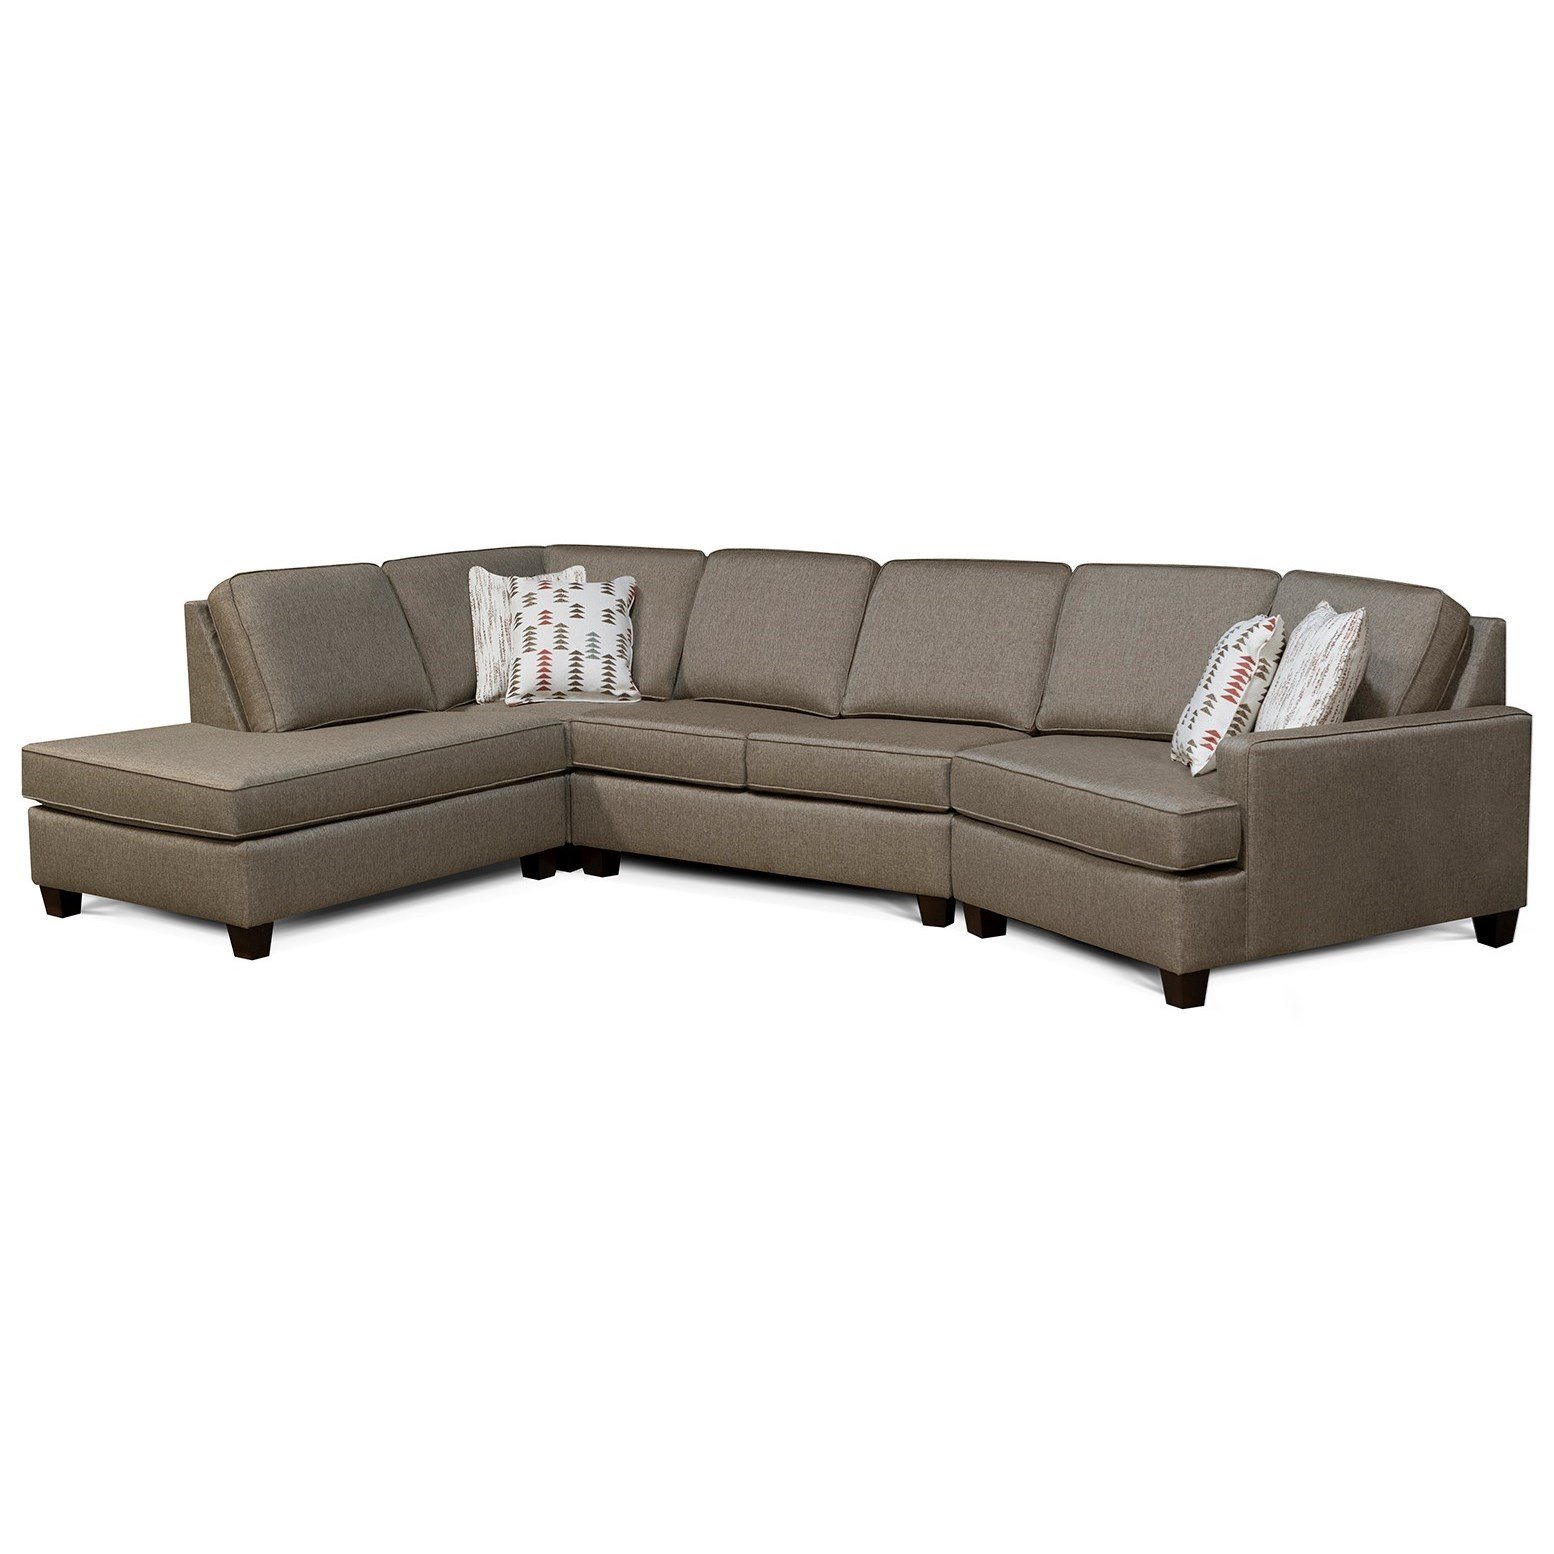 V9D 4-Seat Sectional Sofa w/ LAF Chaise by Alexvale at Turk Furniture